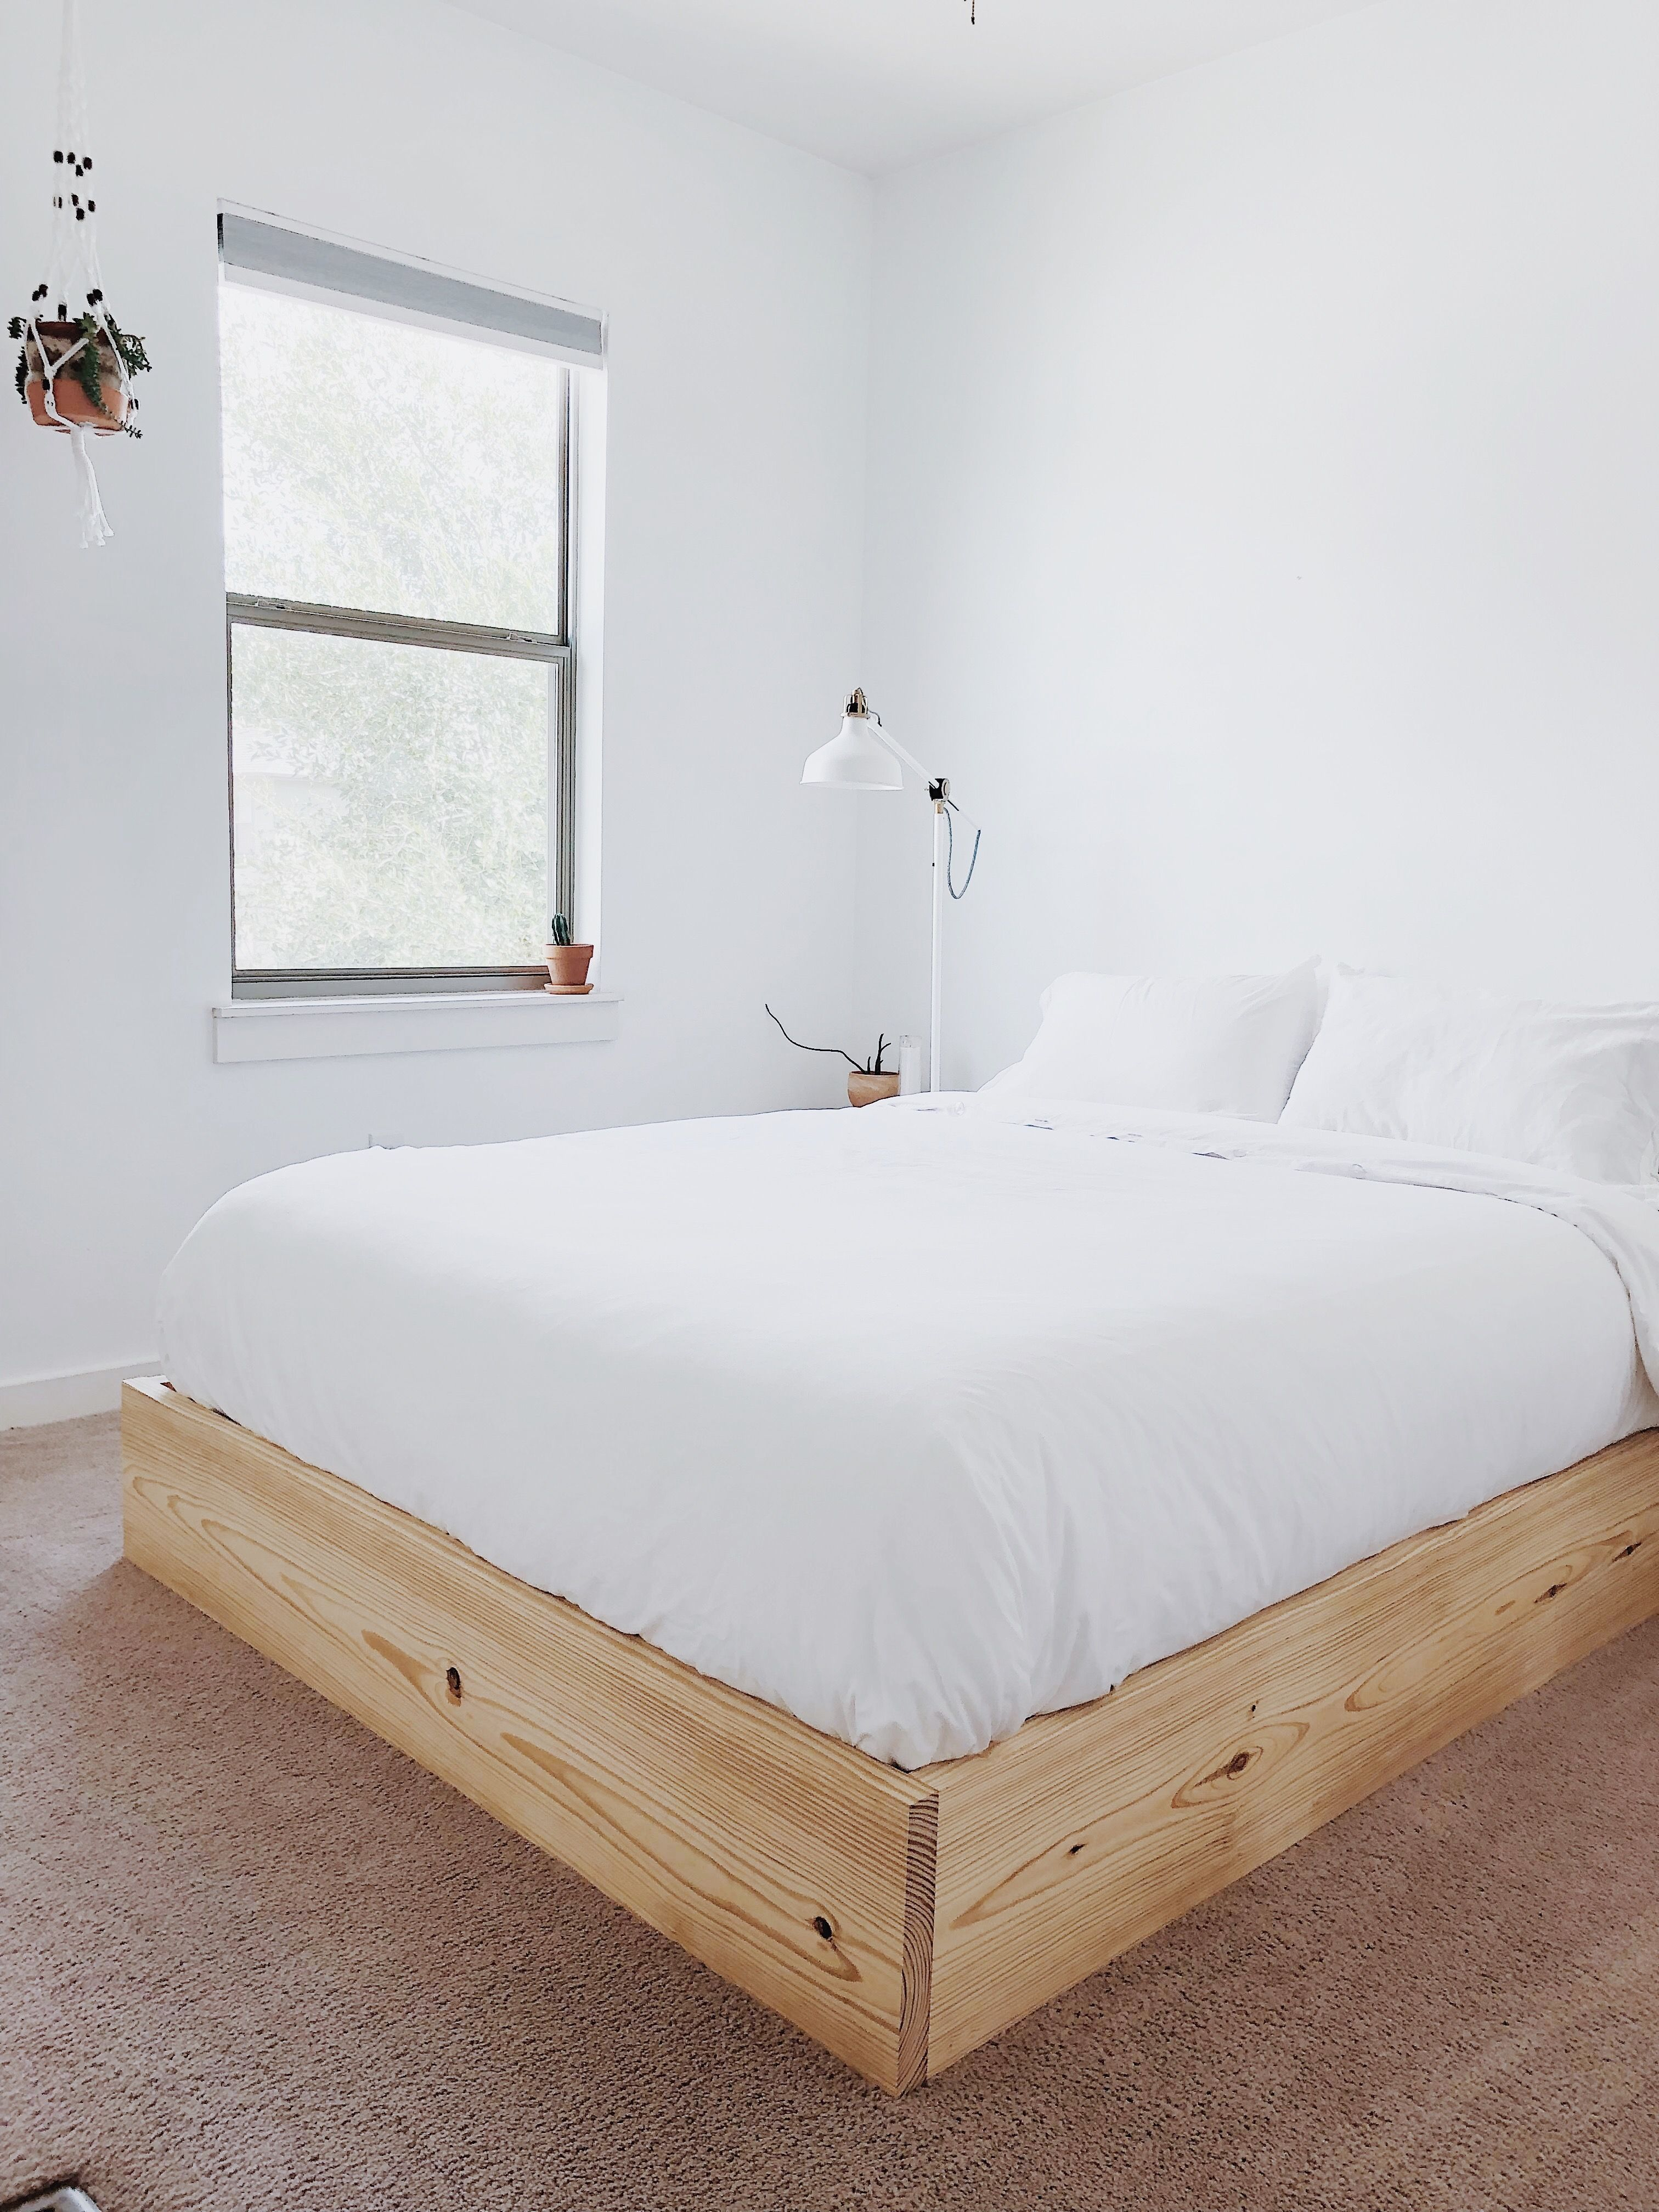 How to build an inexpensive Queen Bed Platform that is super easy, yet modern and attractive. Full video tutorial and build plans available! #diybed #diybedplatform #howtobuildabed